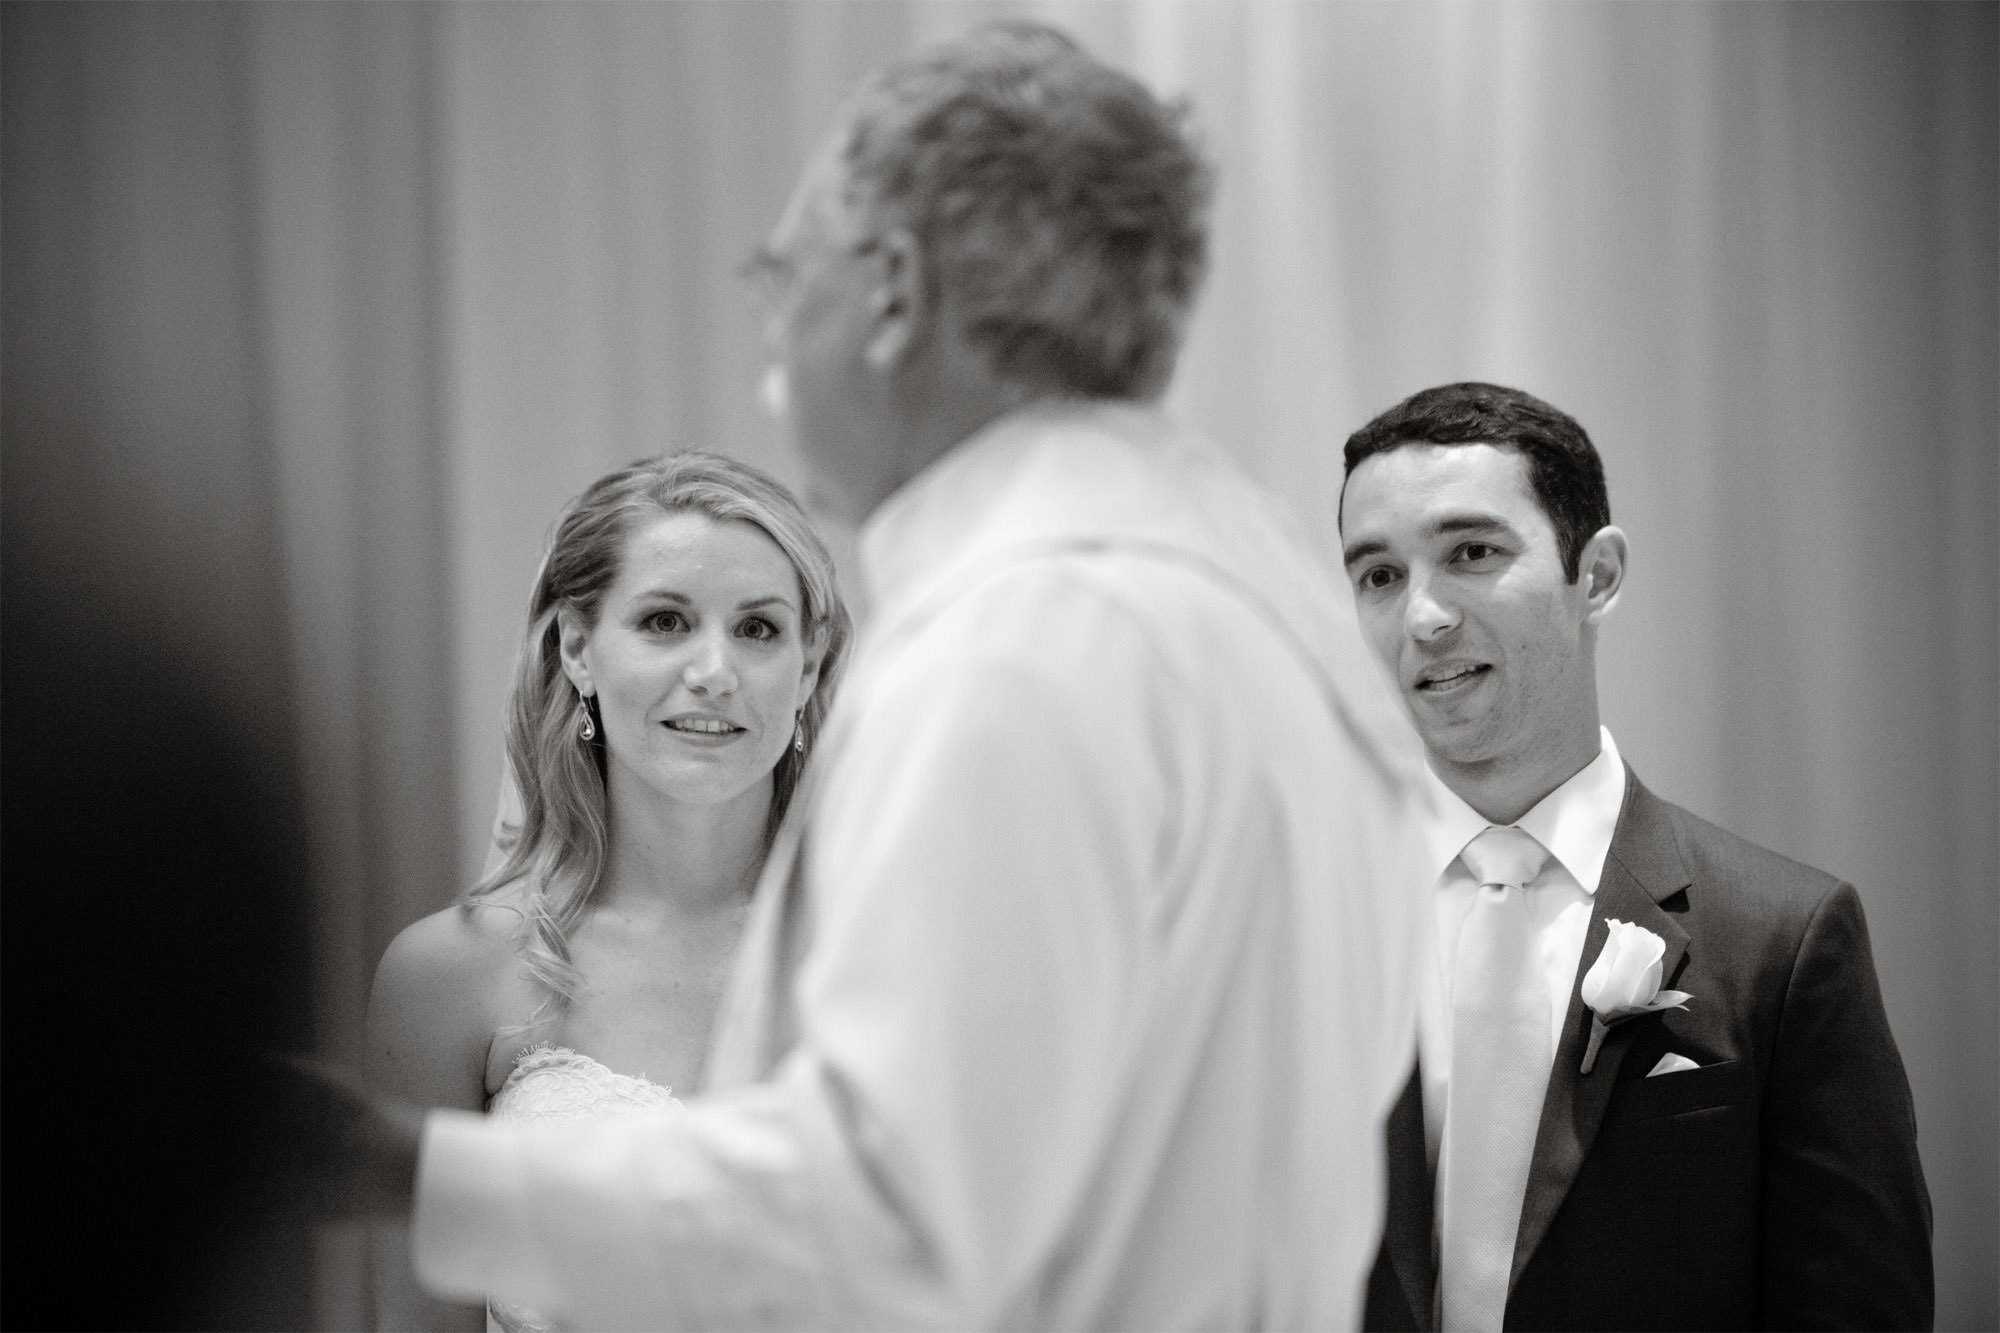 The bride and groom watch the officiant during the wedding ceremony at the Park Hyatt in Washington DC.